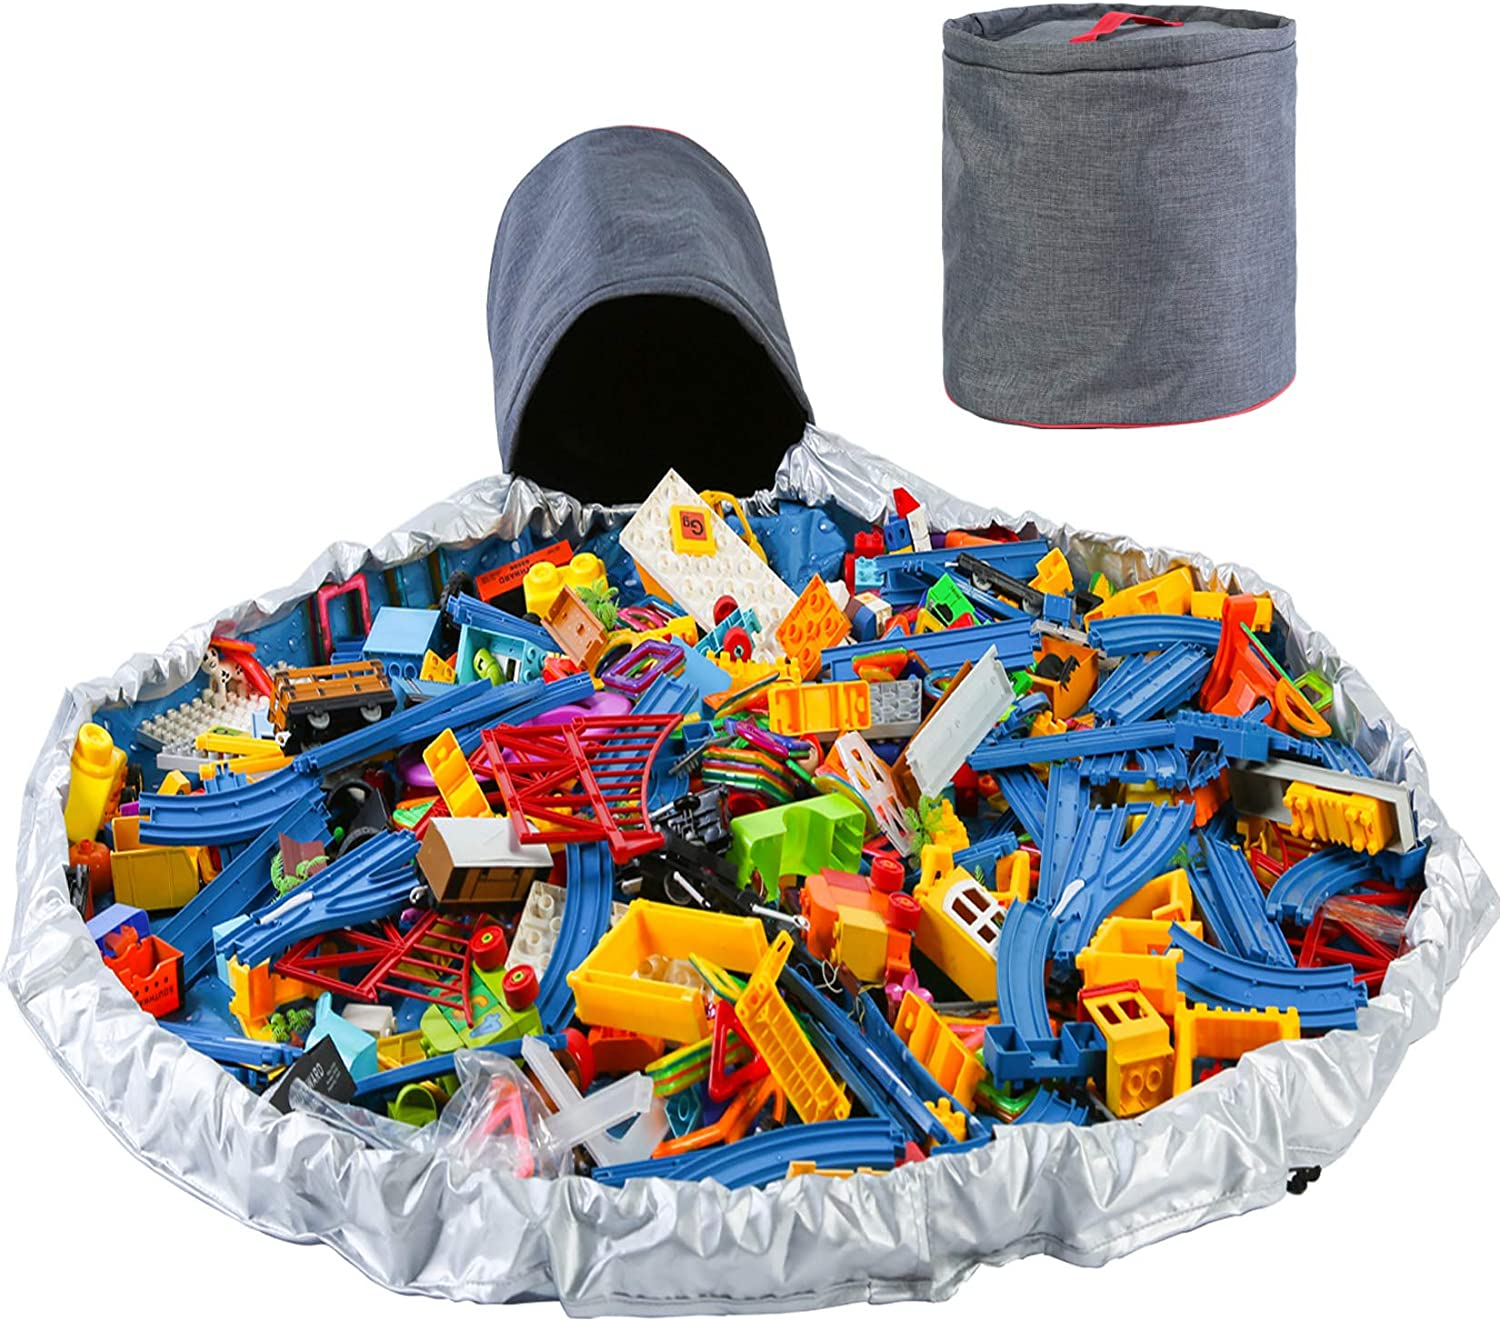 gift HXZB Indefinitely Toy Clean-up and Storage Mat Container Mul Play Integrated